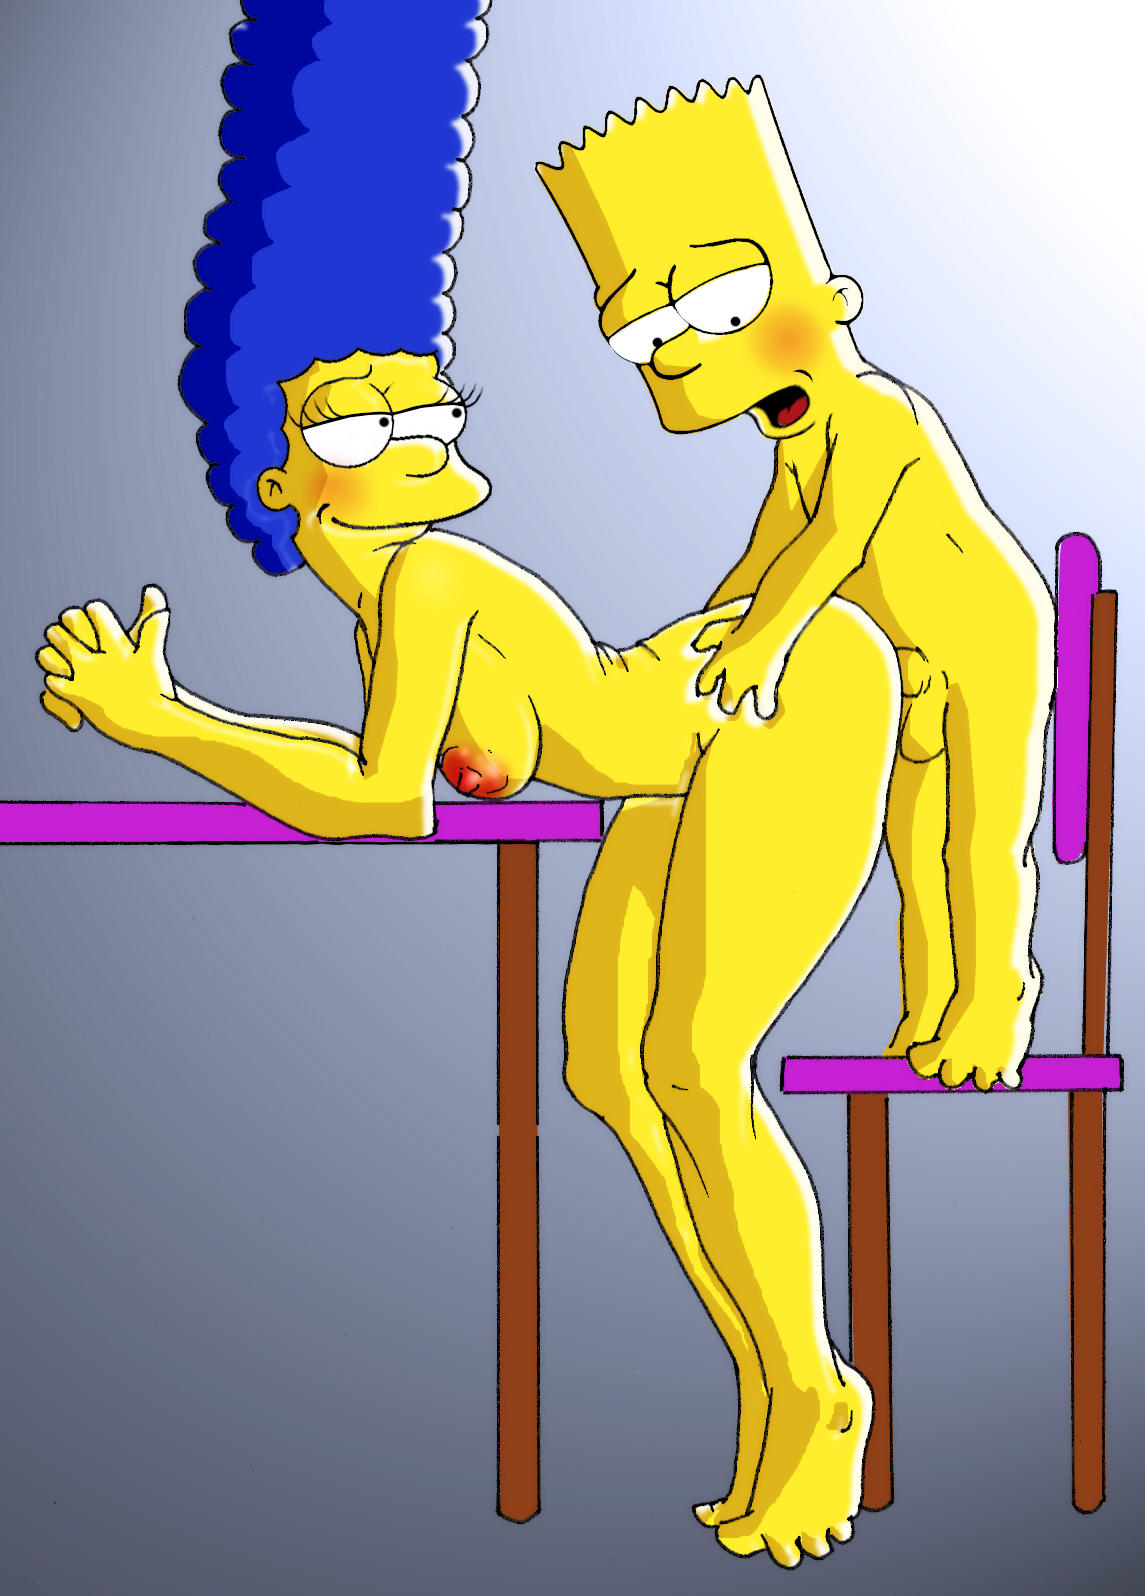 Animated Porn Gif Lisa Simpsons marge simpson anal fucked - sex photo